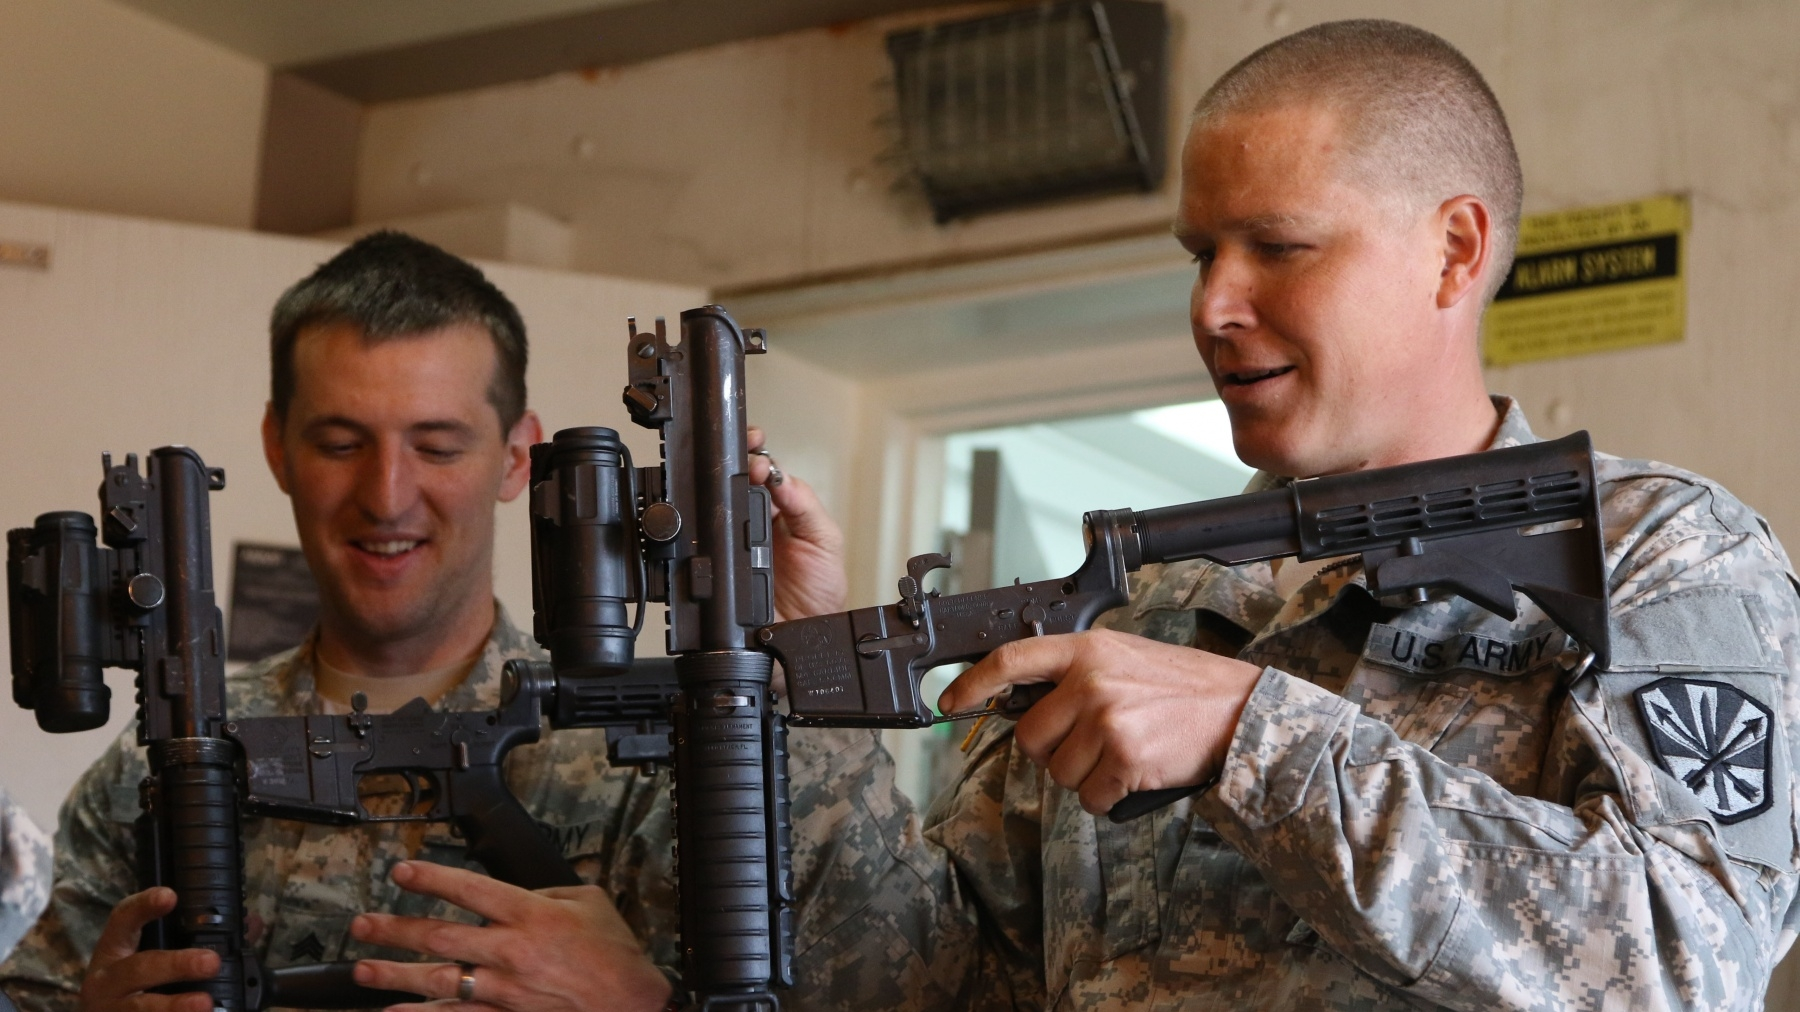 Alaska Army National Guard Sgt. Marshall Webb and Arizona Army National Guard Spc. Randall C. Goodin Jr., inspect M-4 carbines, June 22, at Fort Greely, Alaska.